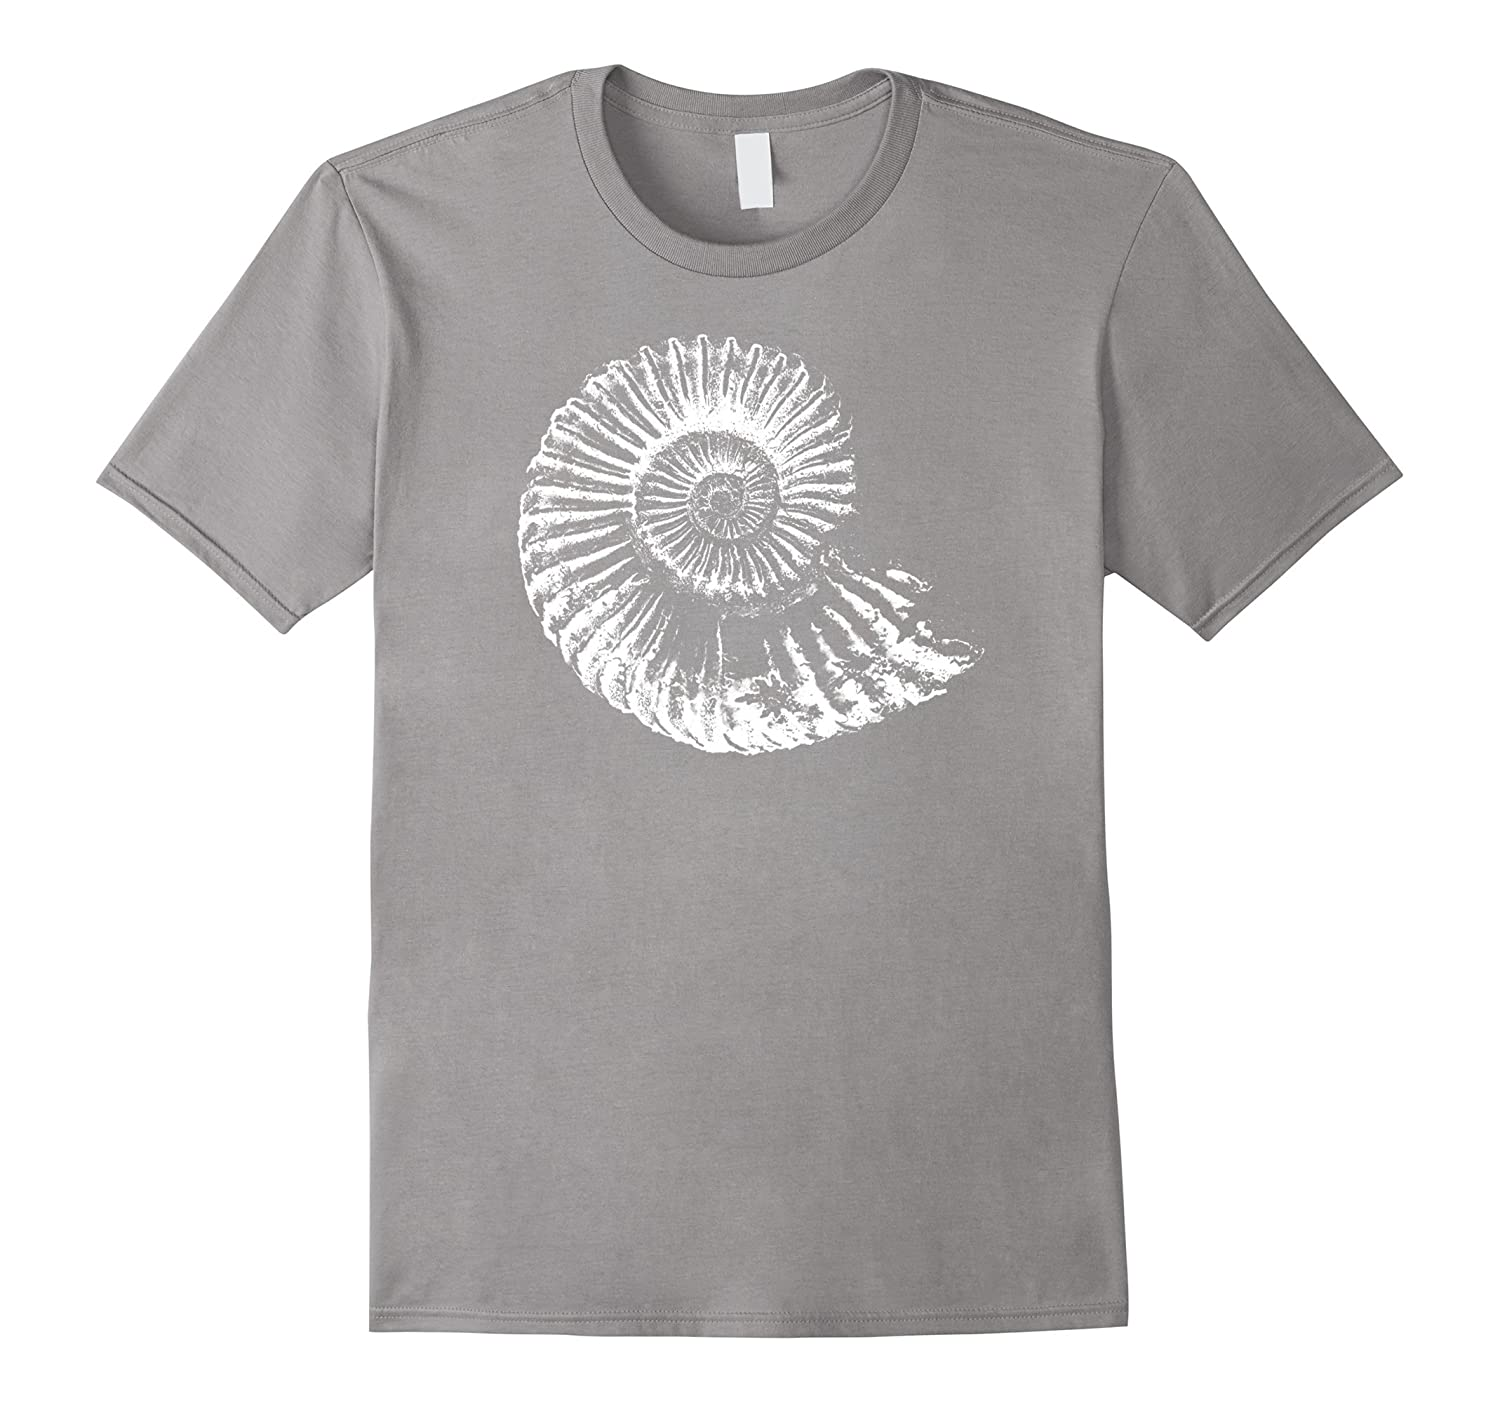 Fossil tshirt with an ammonite ideal for fossil hunters-PL